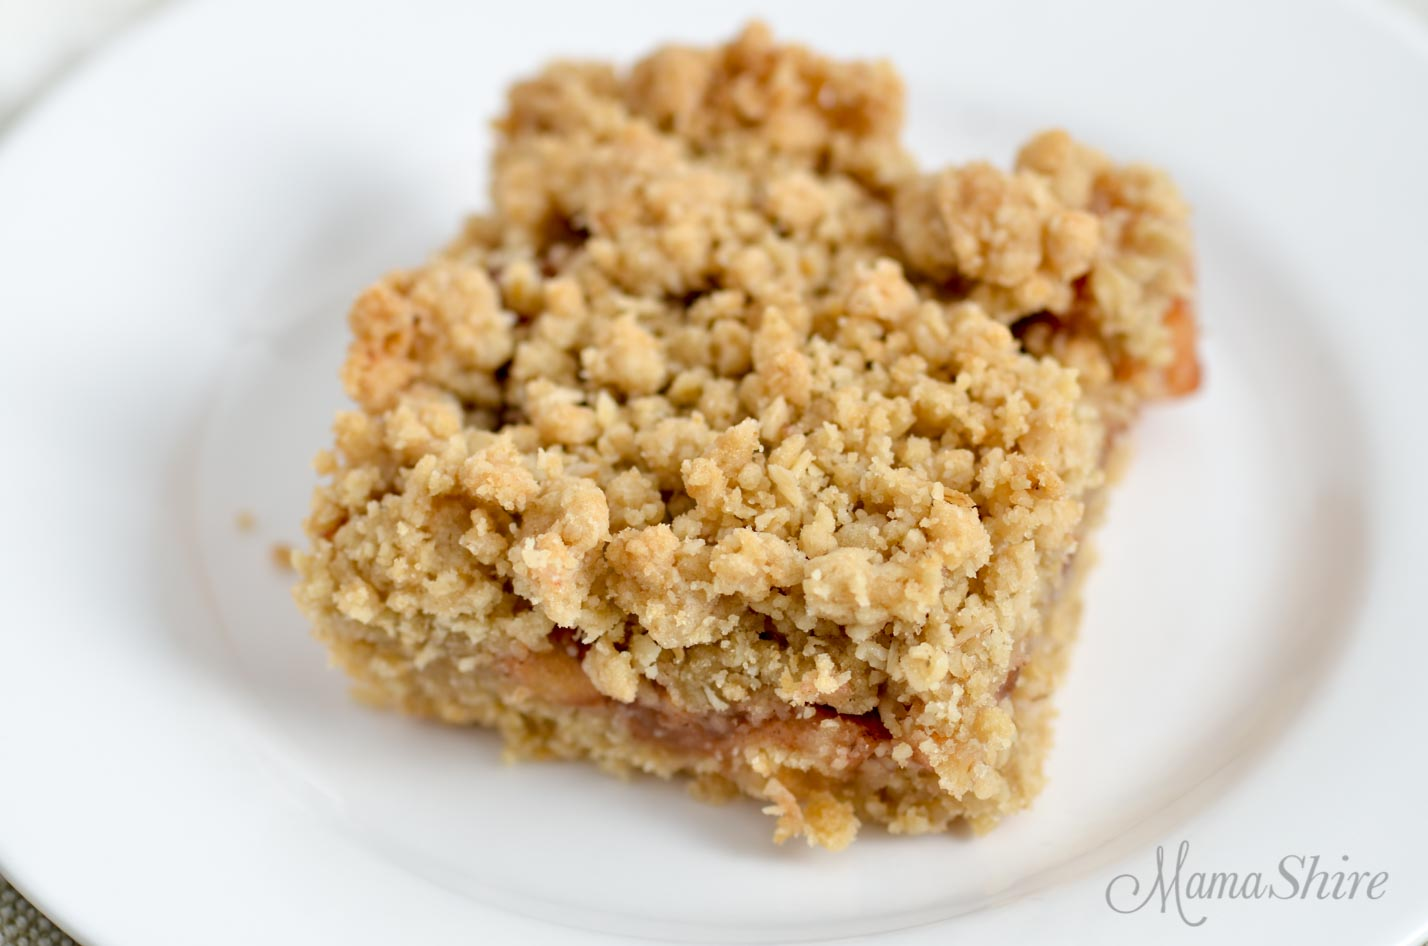 Apple oatmeal bar with crumb topping.